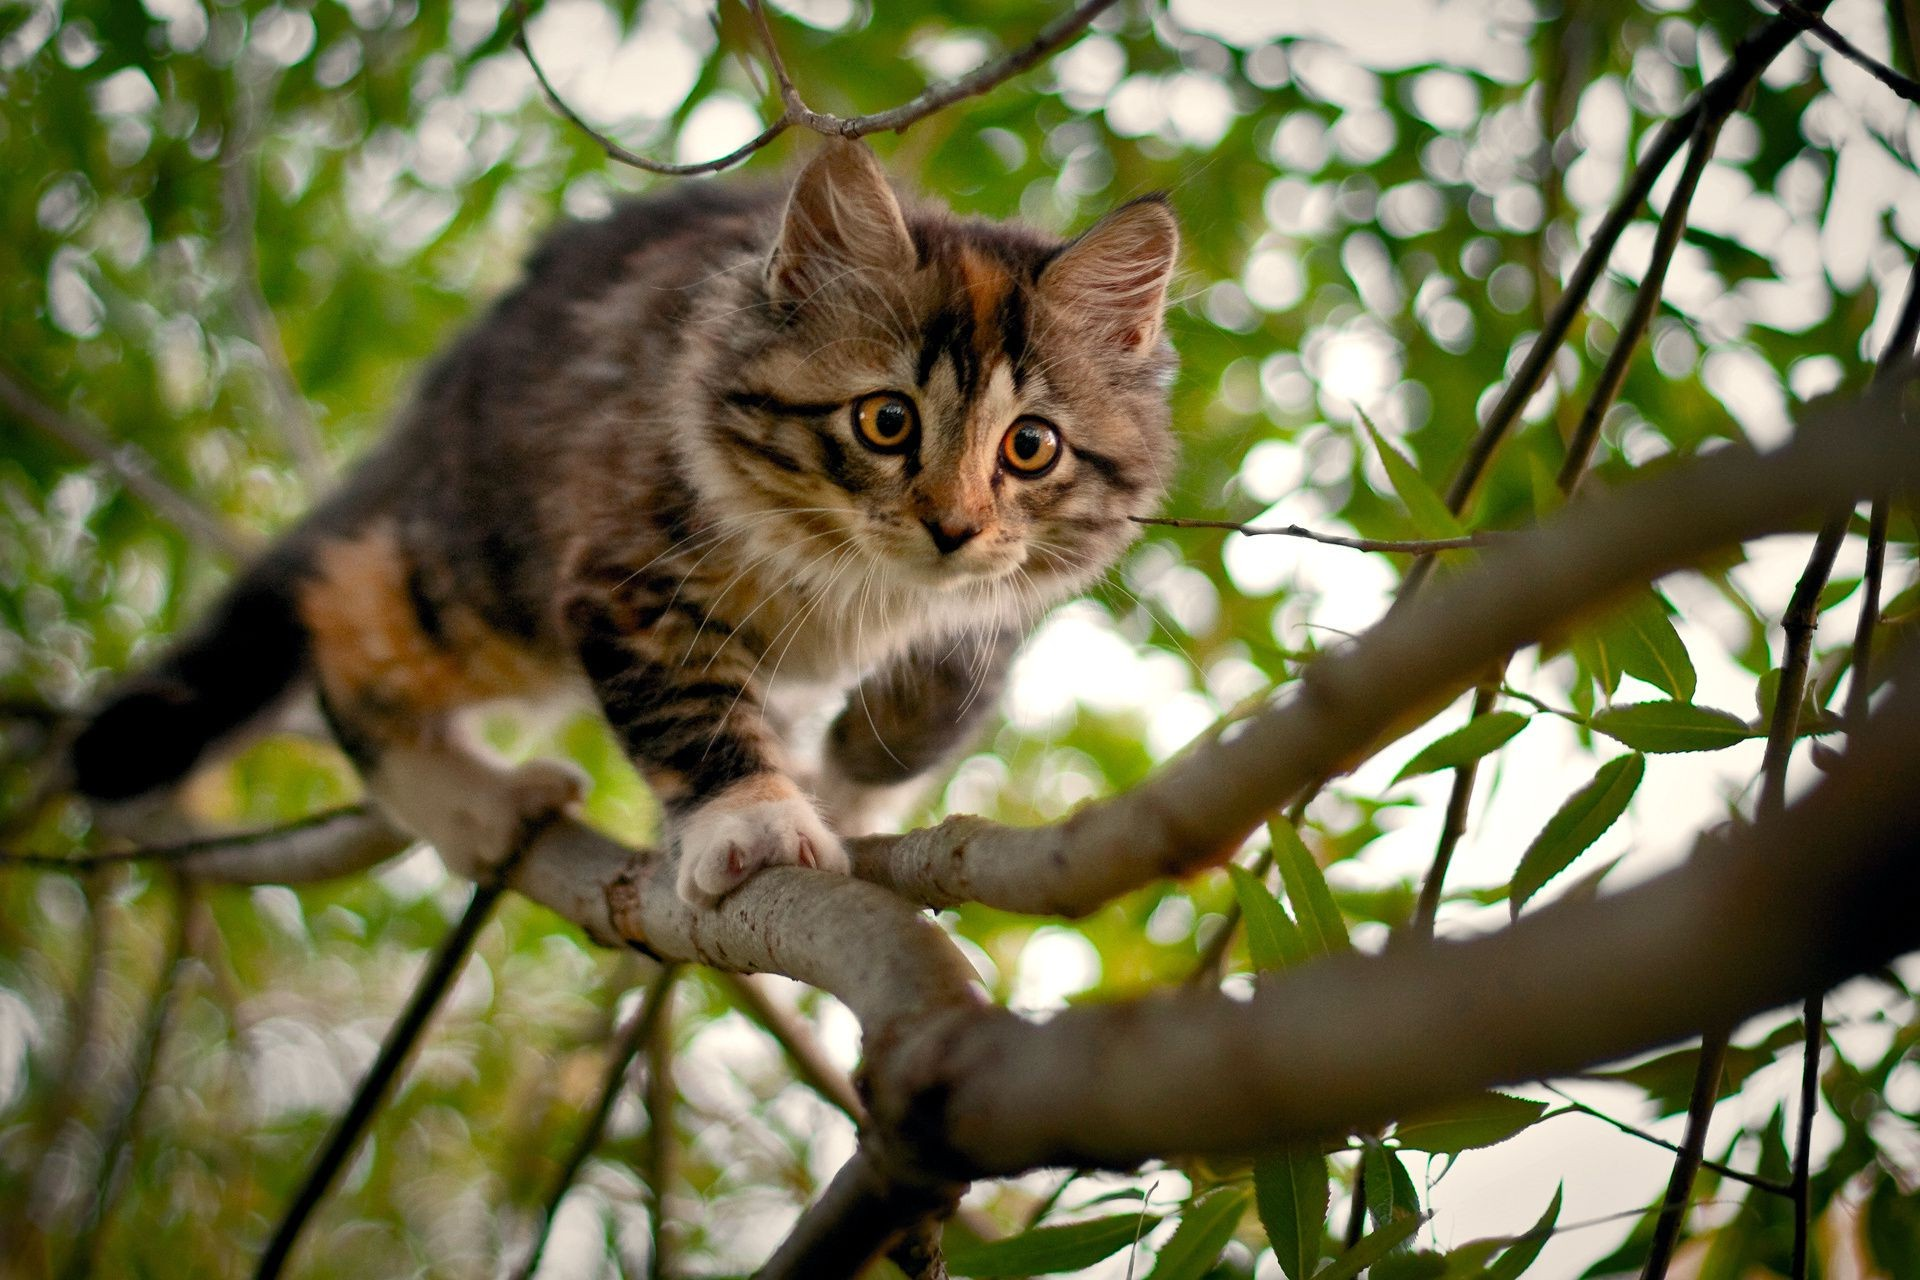 Kitten the branches of the tree